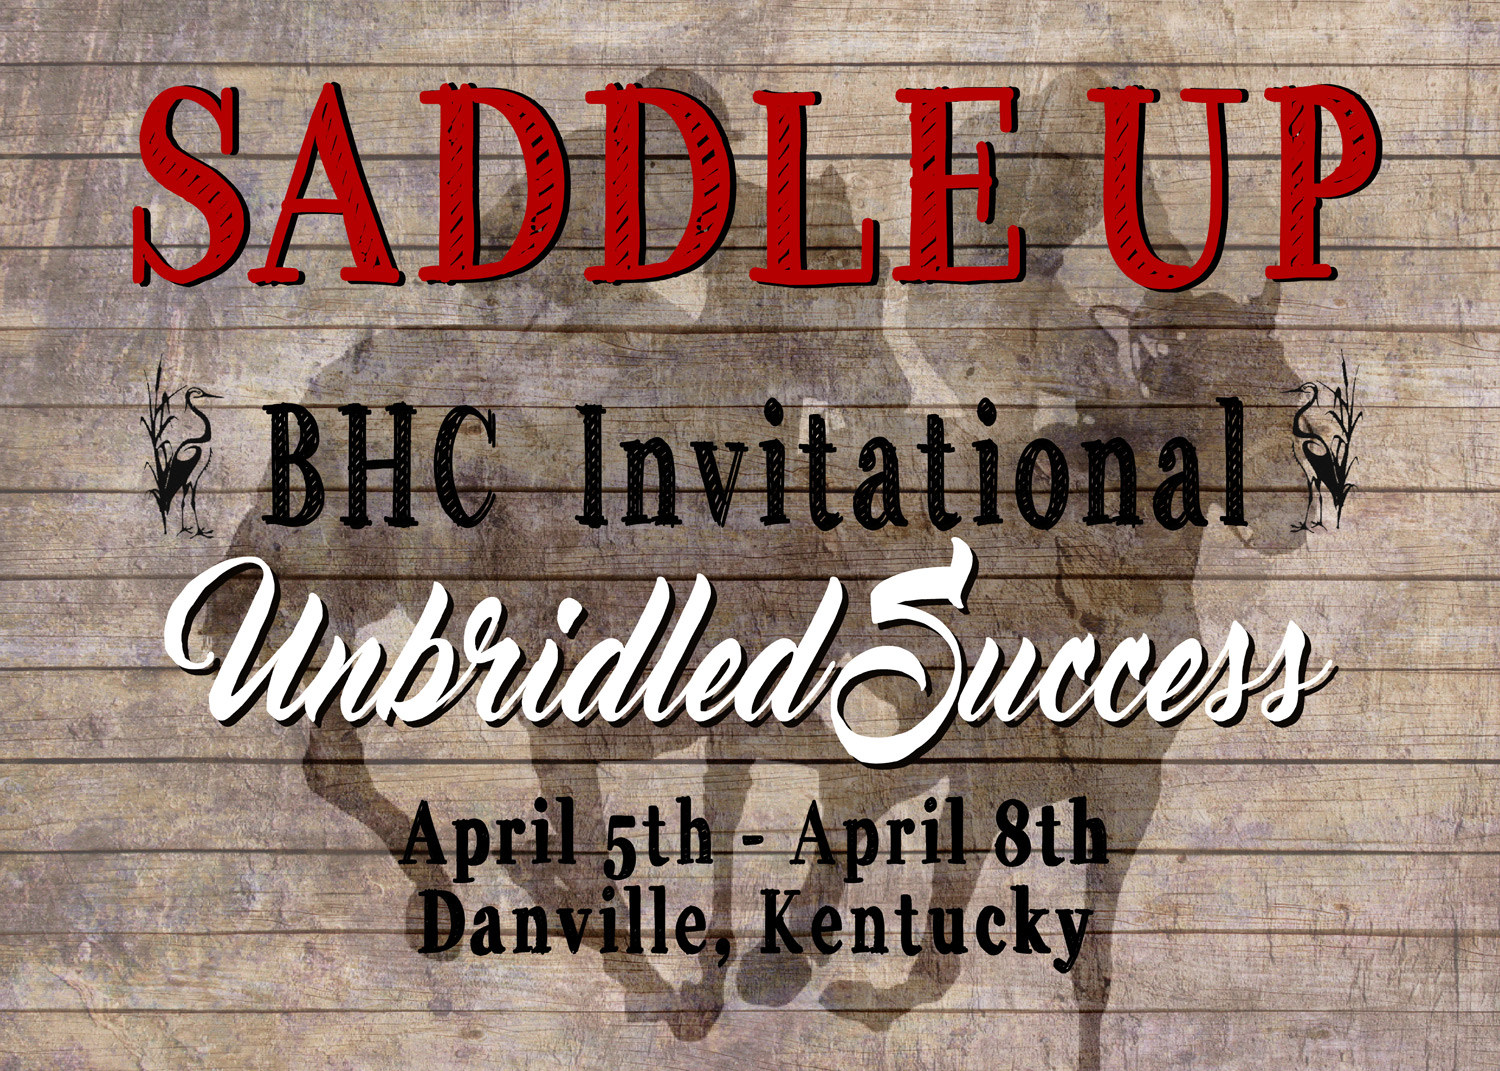 SADDLE UP, BHC Invitational: Unbridled Success